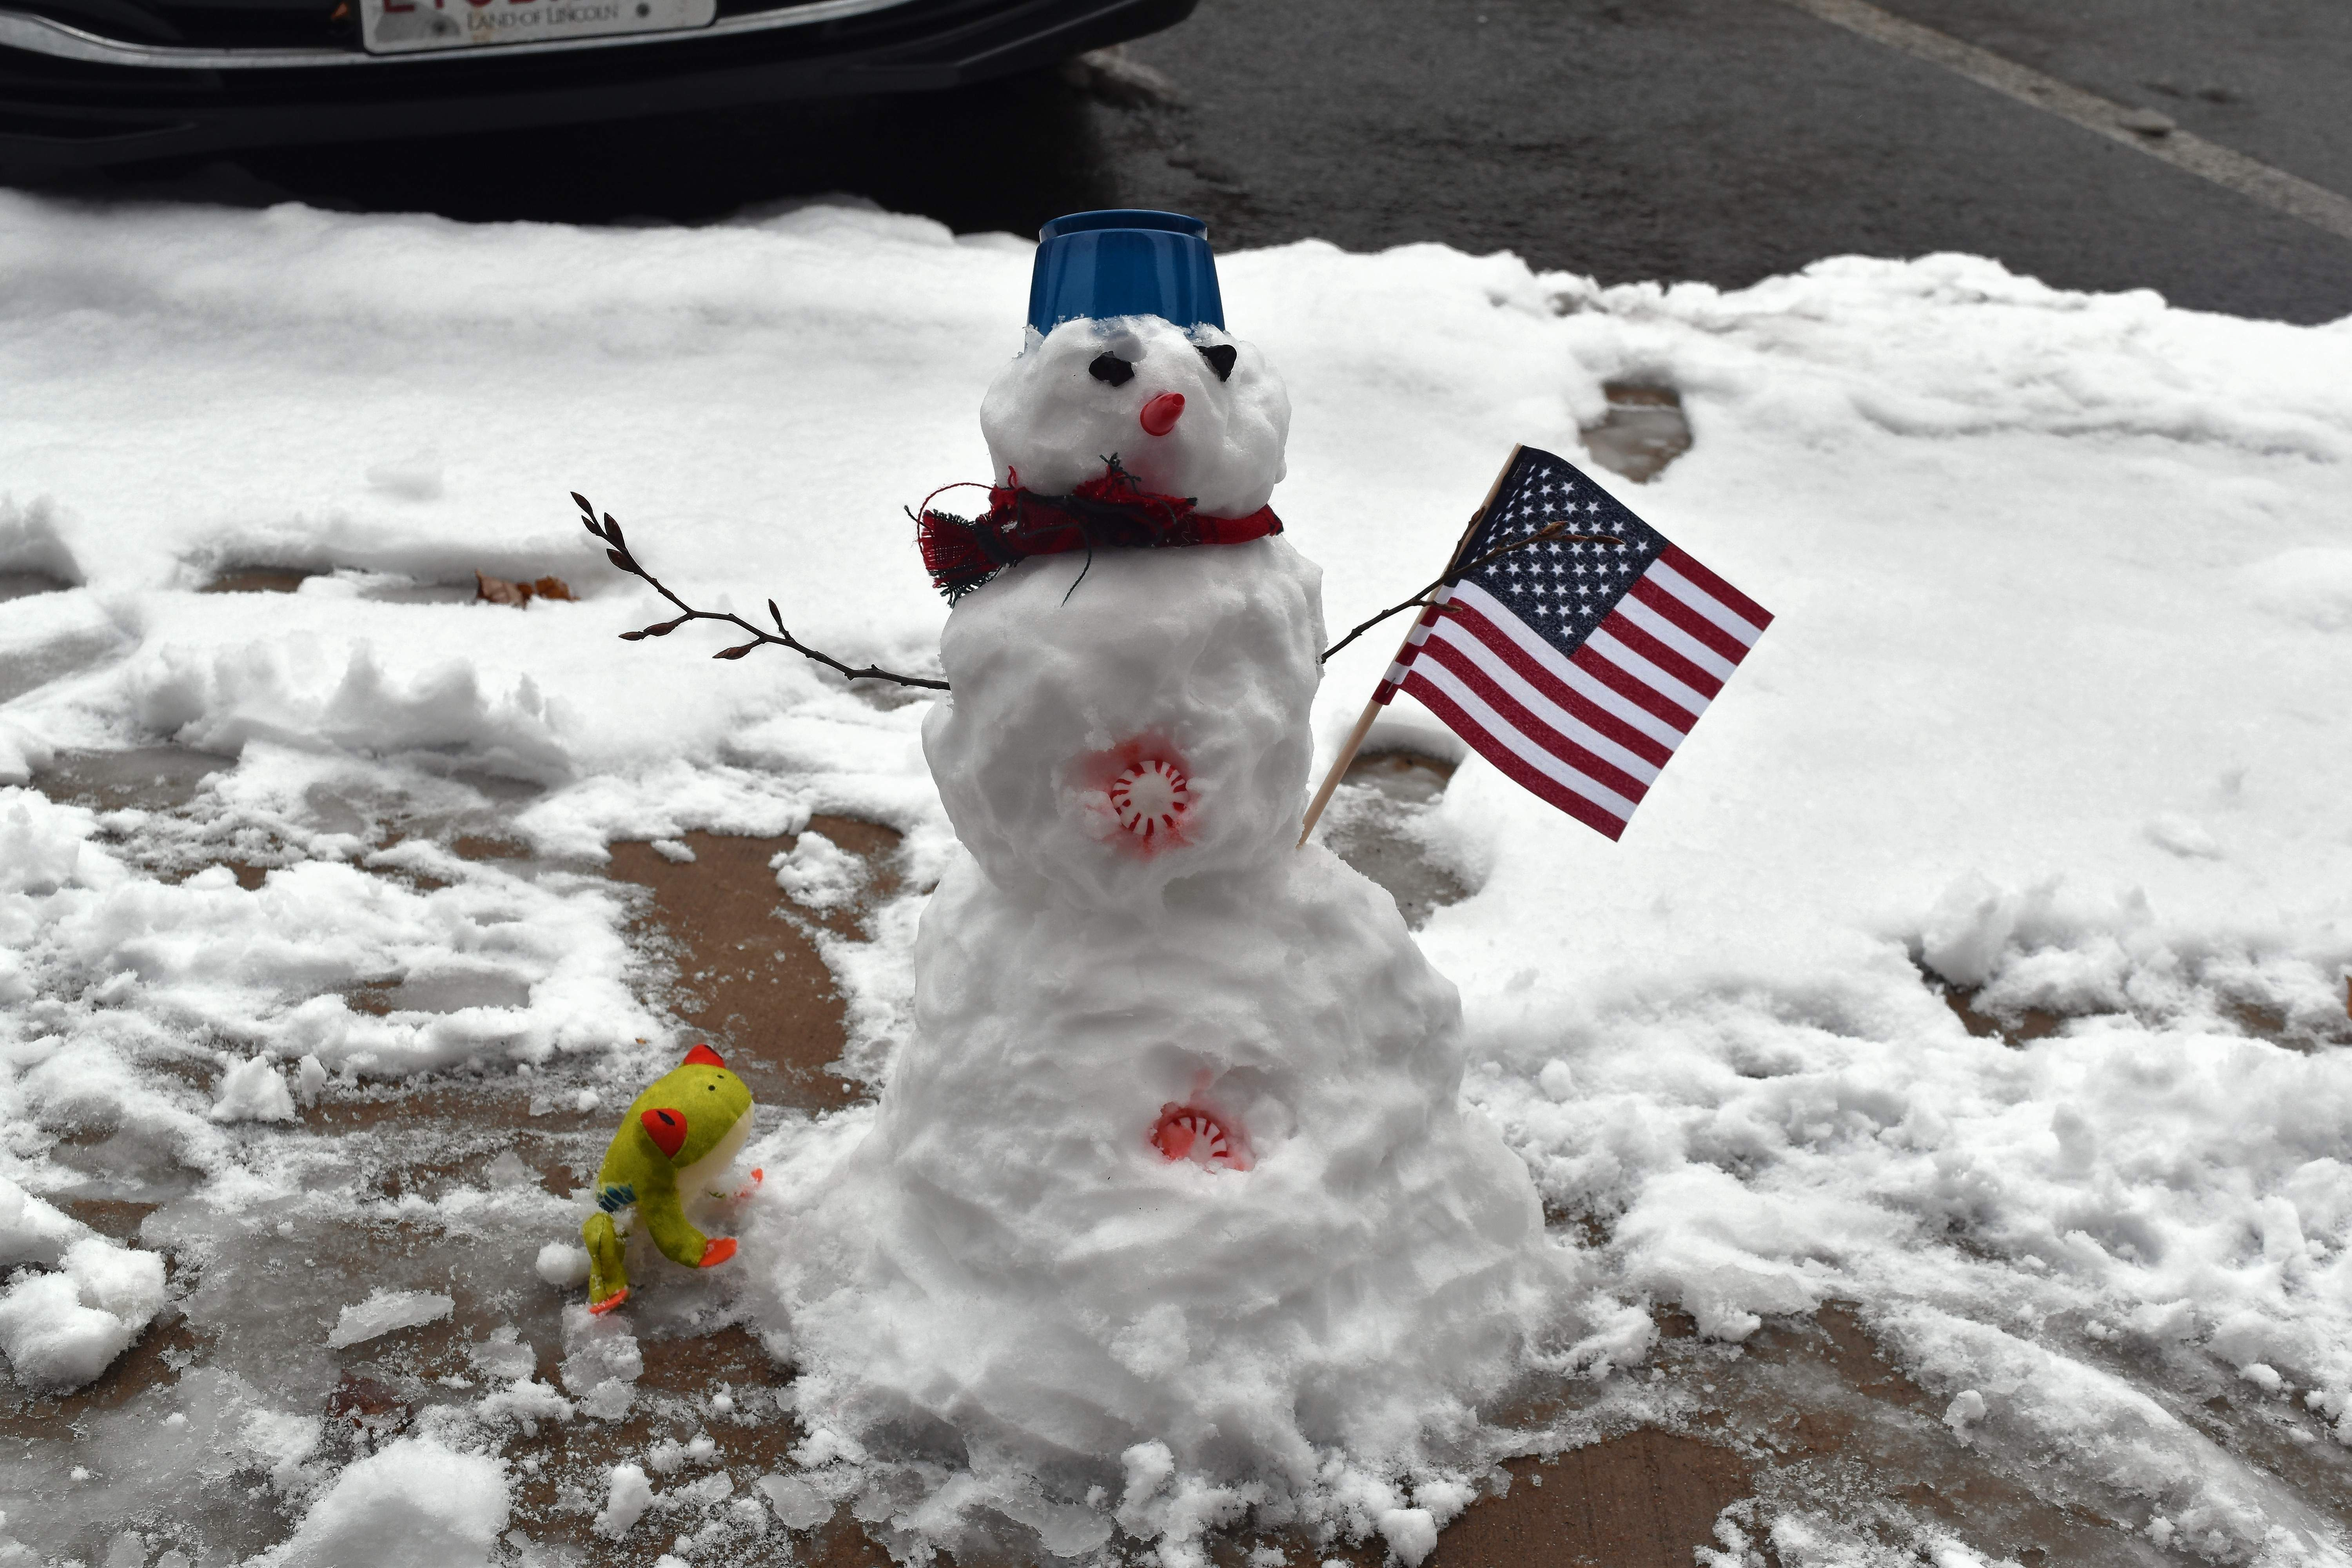 This small, yet decorative snowman graced the front sidewalk of the Du Quoin Call office Thursday morning, perhaps the prank of some youngsters who were out of school for the day.